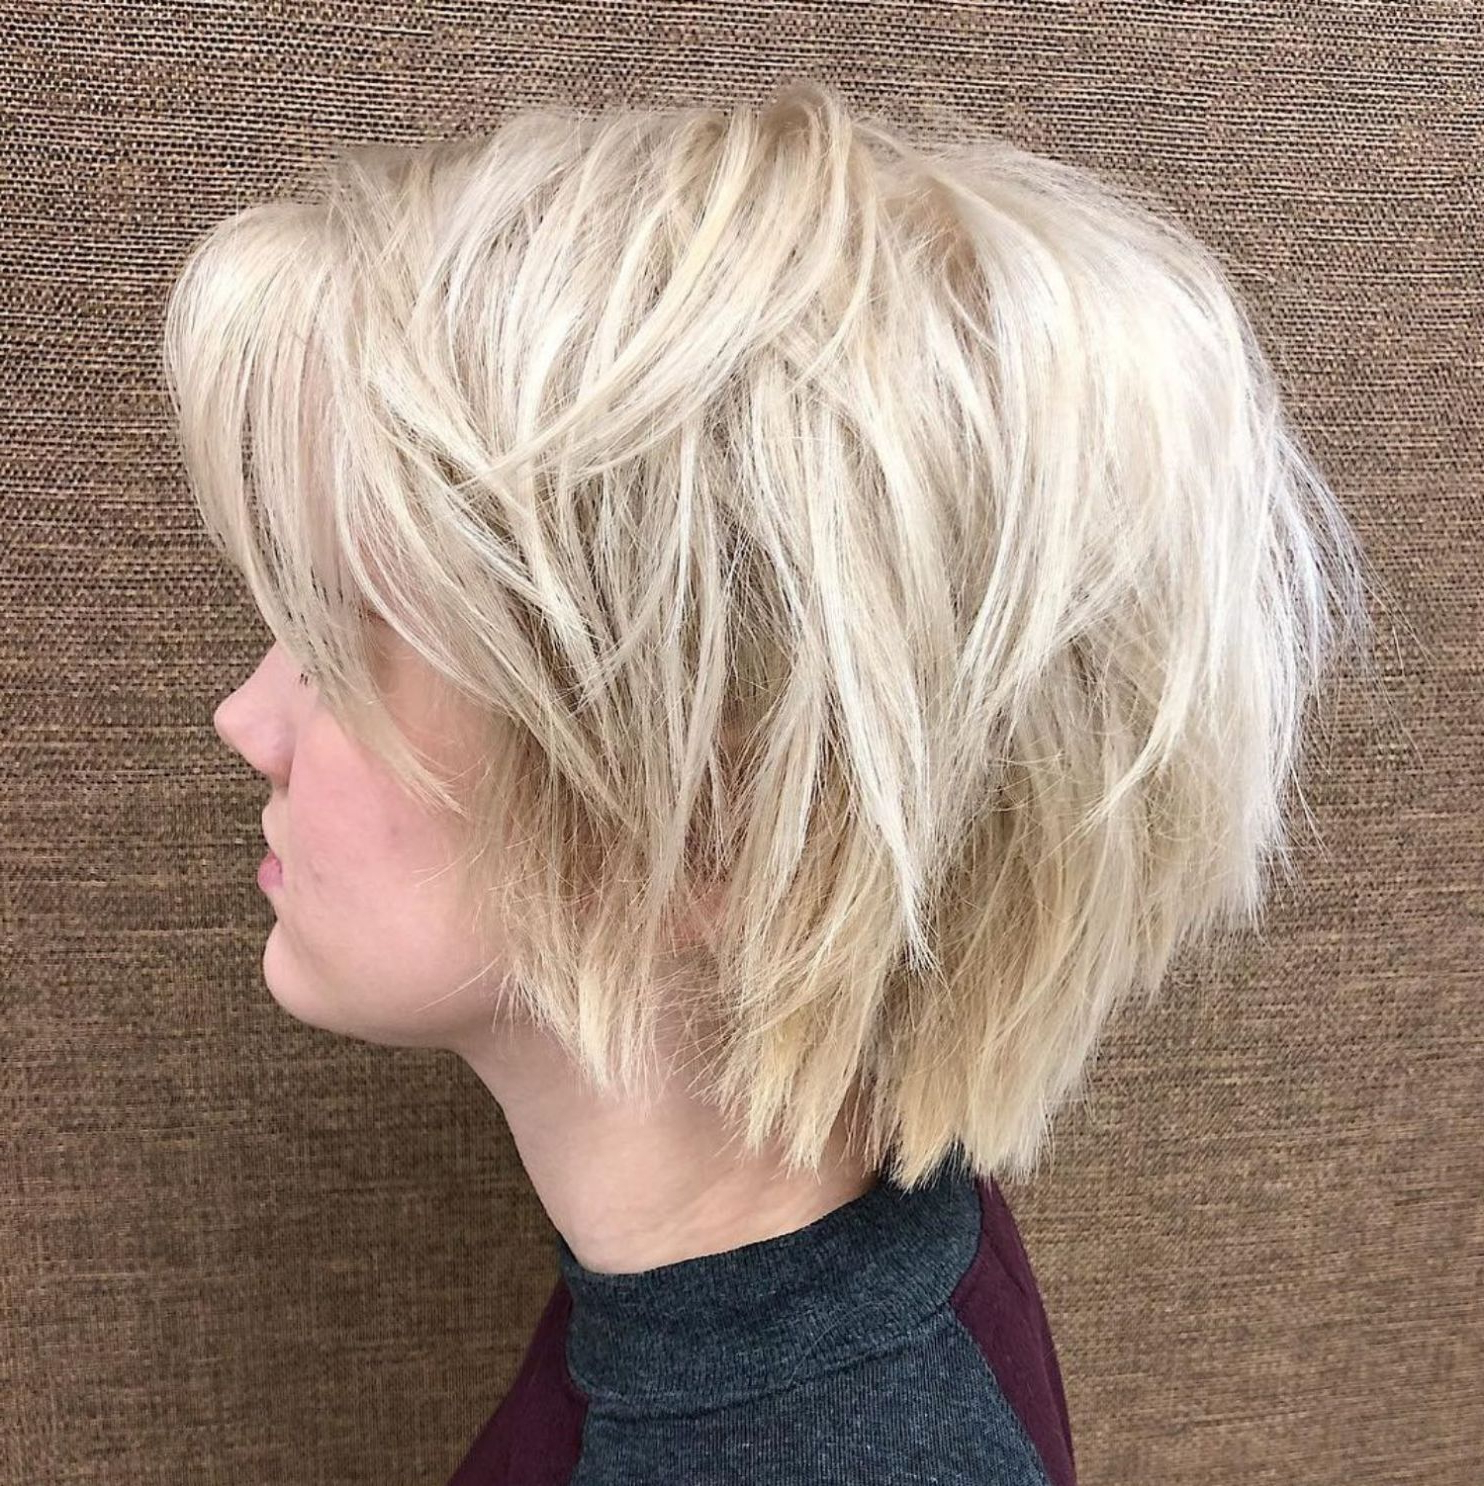 60 Short Shag Hairstyles That You Simply Can't Miss In 2018 Inside Short Red Haircuts With Wispy Layers (View 12 of 20)